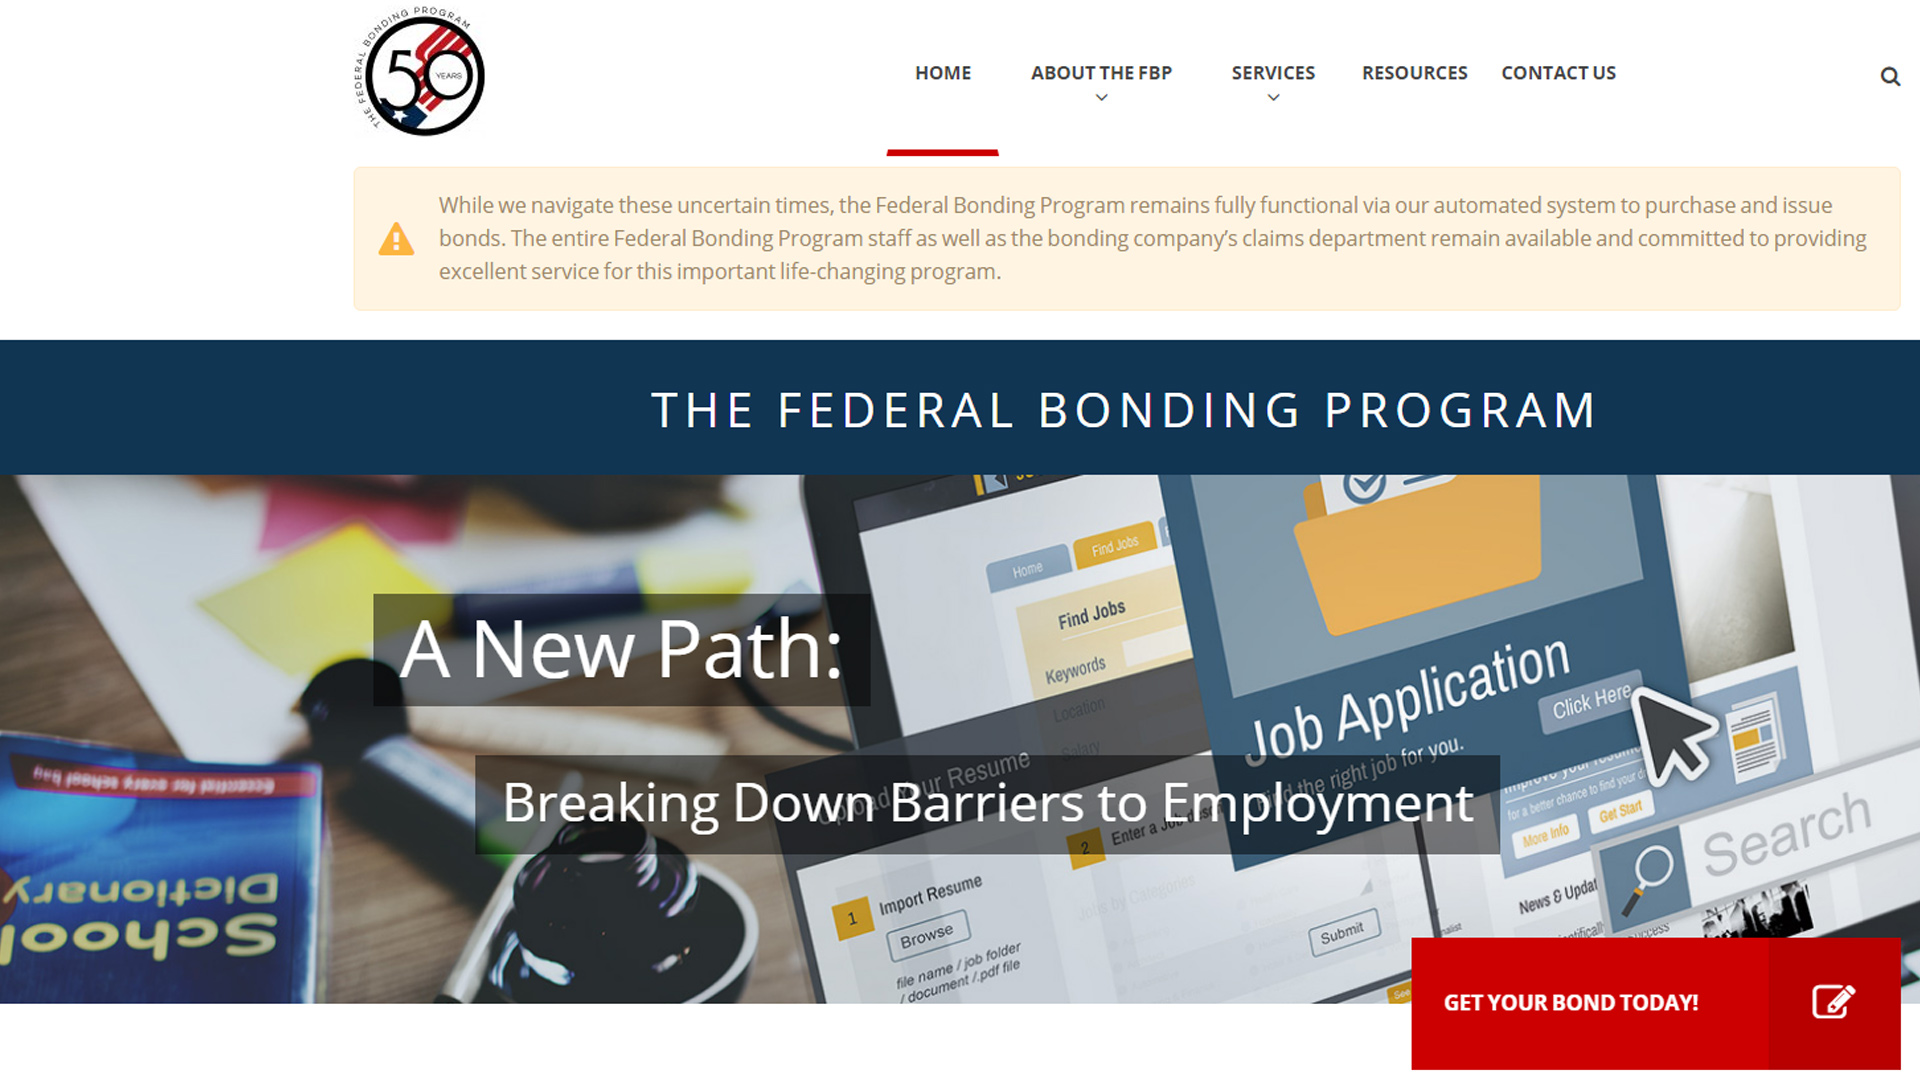 Spotlight on Jobseeker Services: The Federal Bonding Program